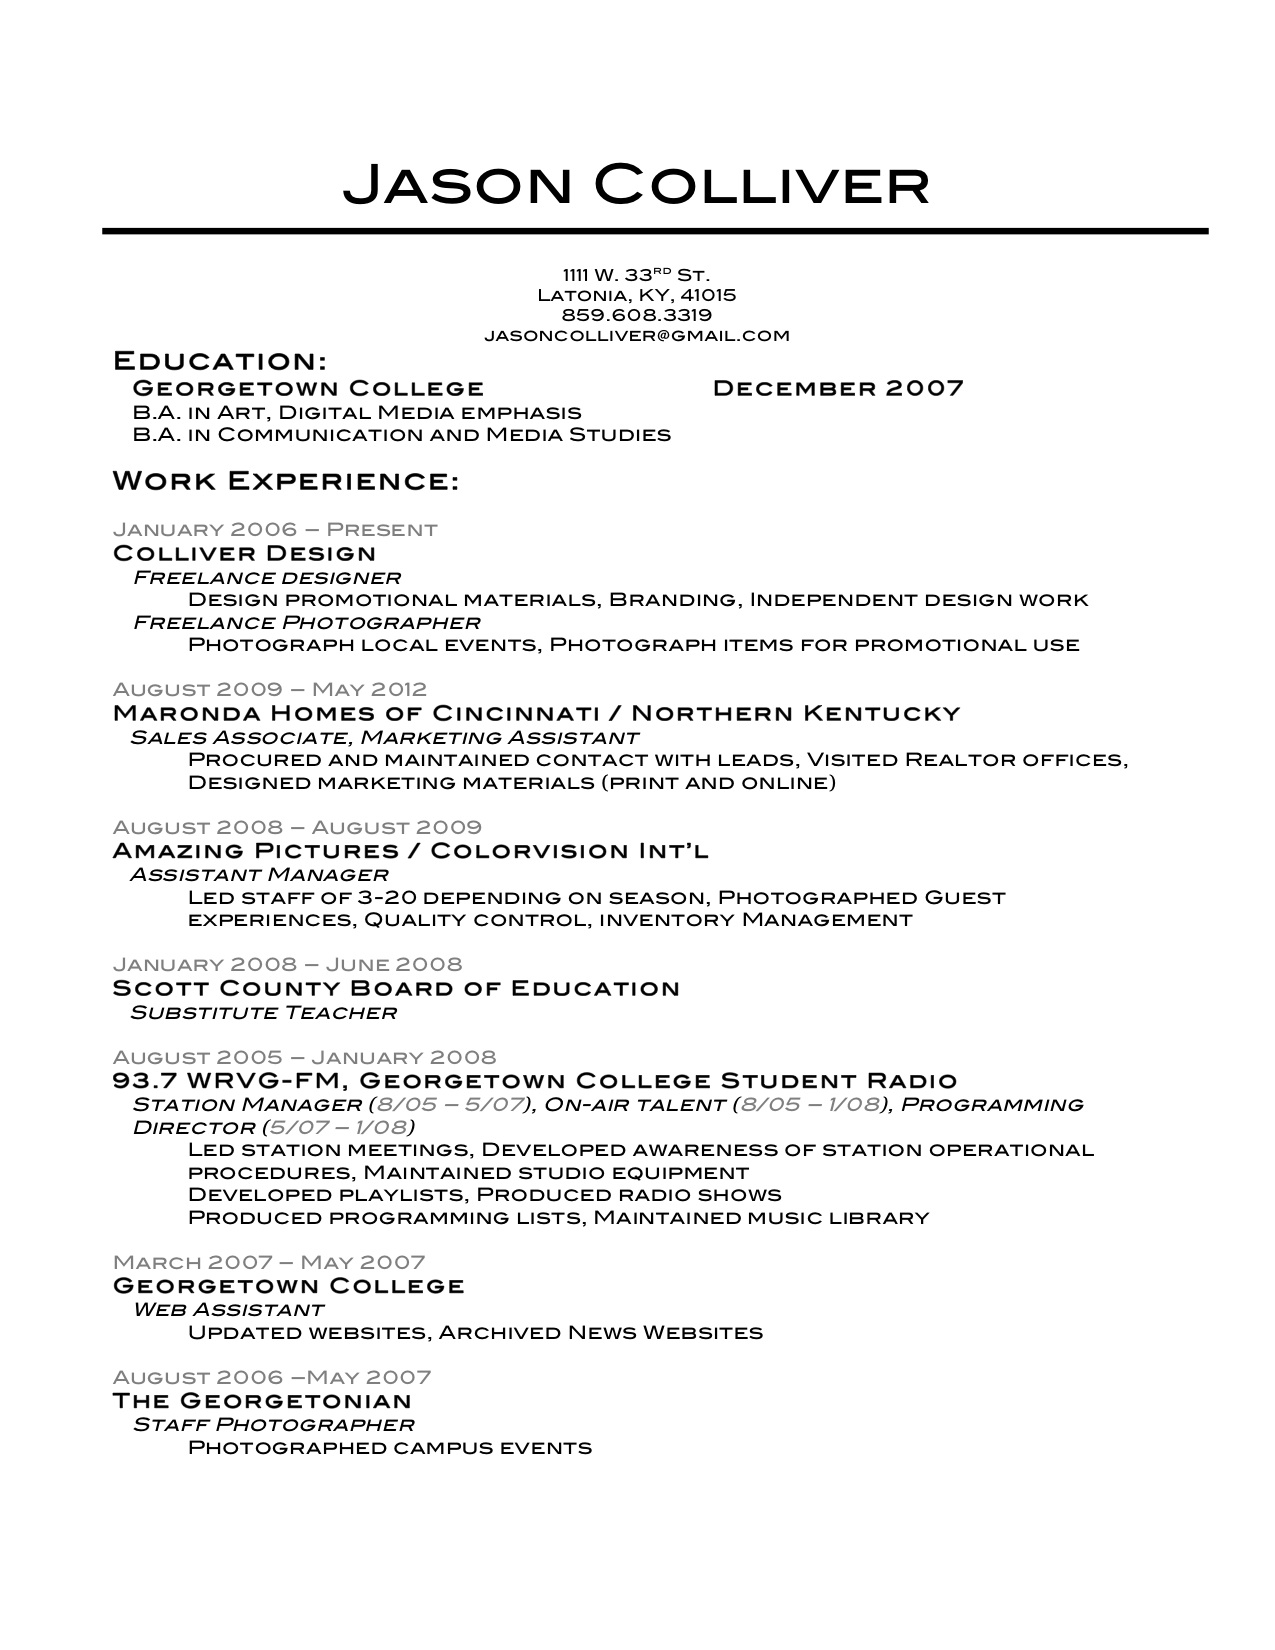 The Best Resumes Jason Colliver Smile Youre At The Best Wordpress